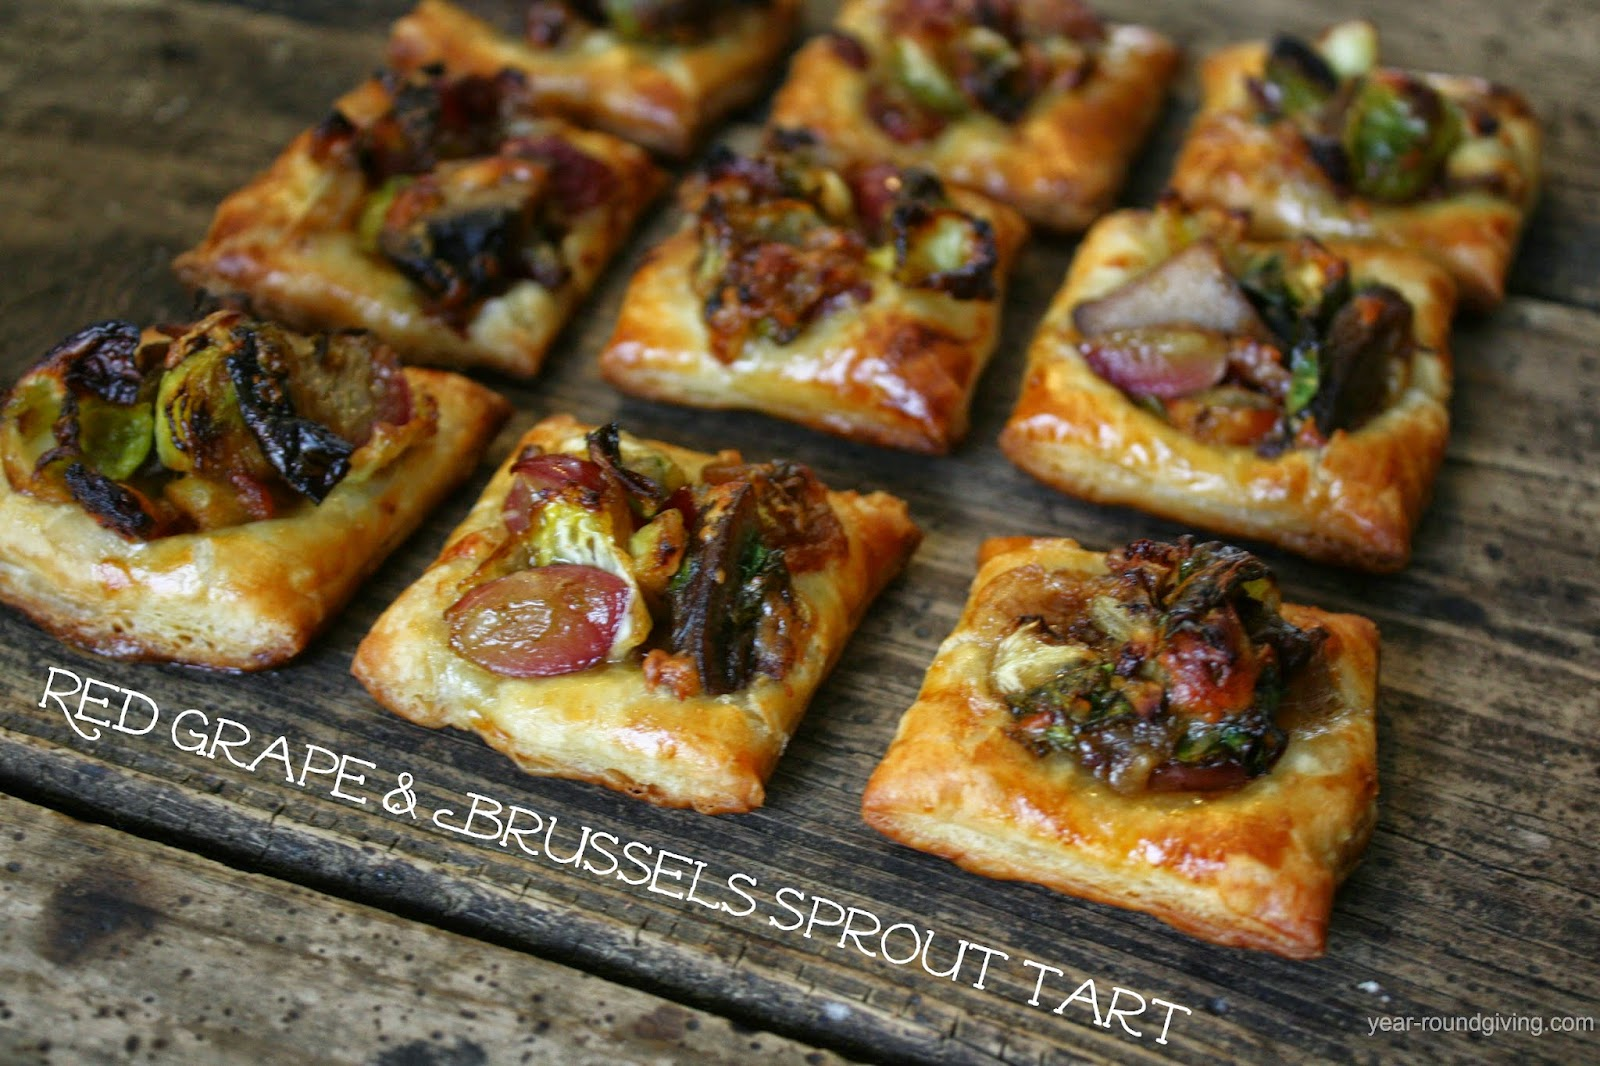 Red Grape & Brussels Sprout Tart